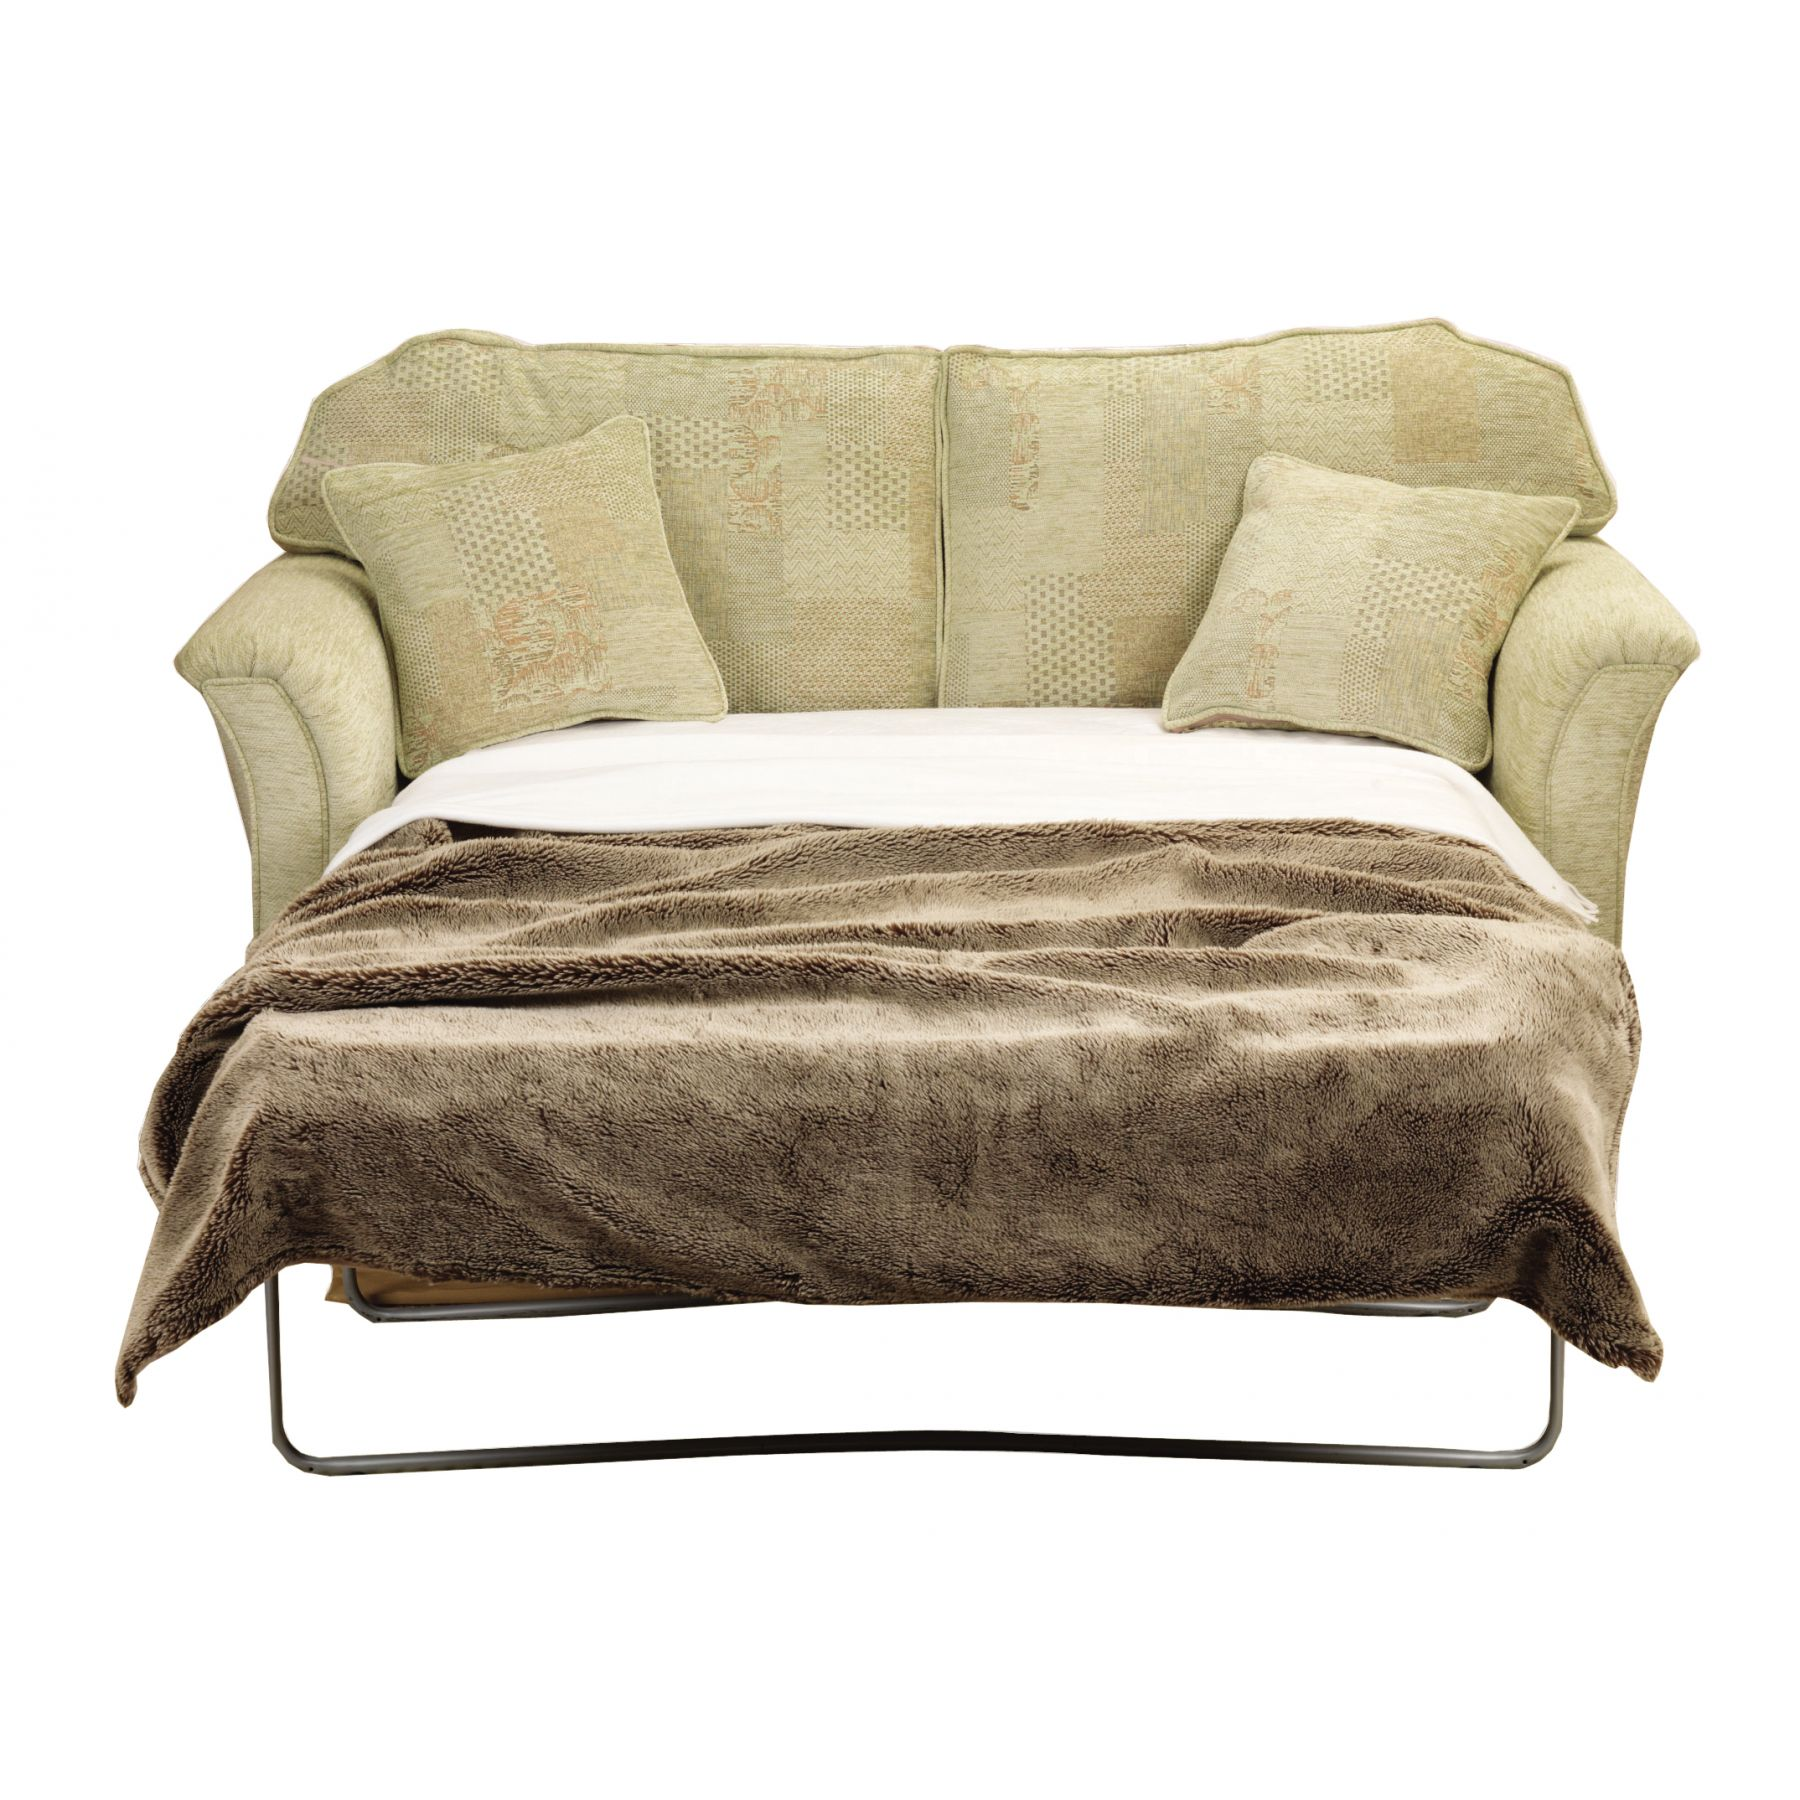 Loveseat Couch Convertible Loveseat Sofa Bed With Chaise Couch And Sofa